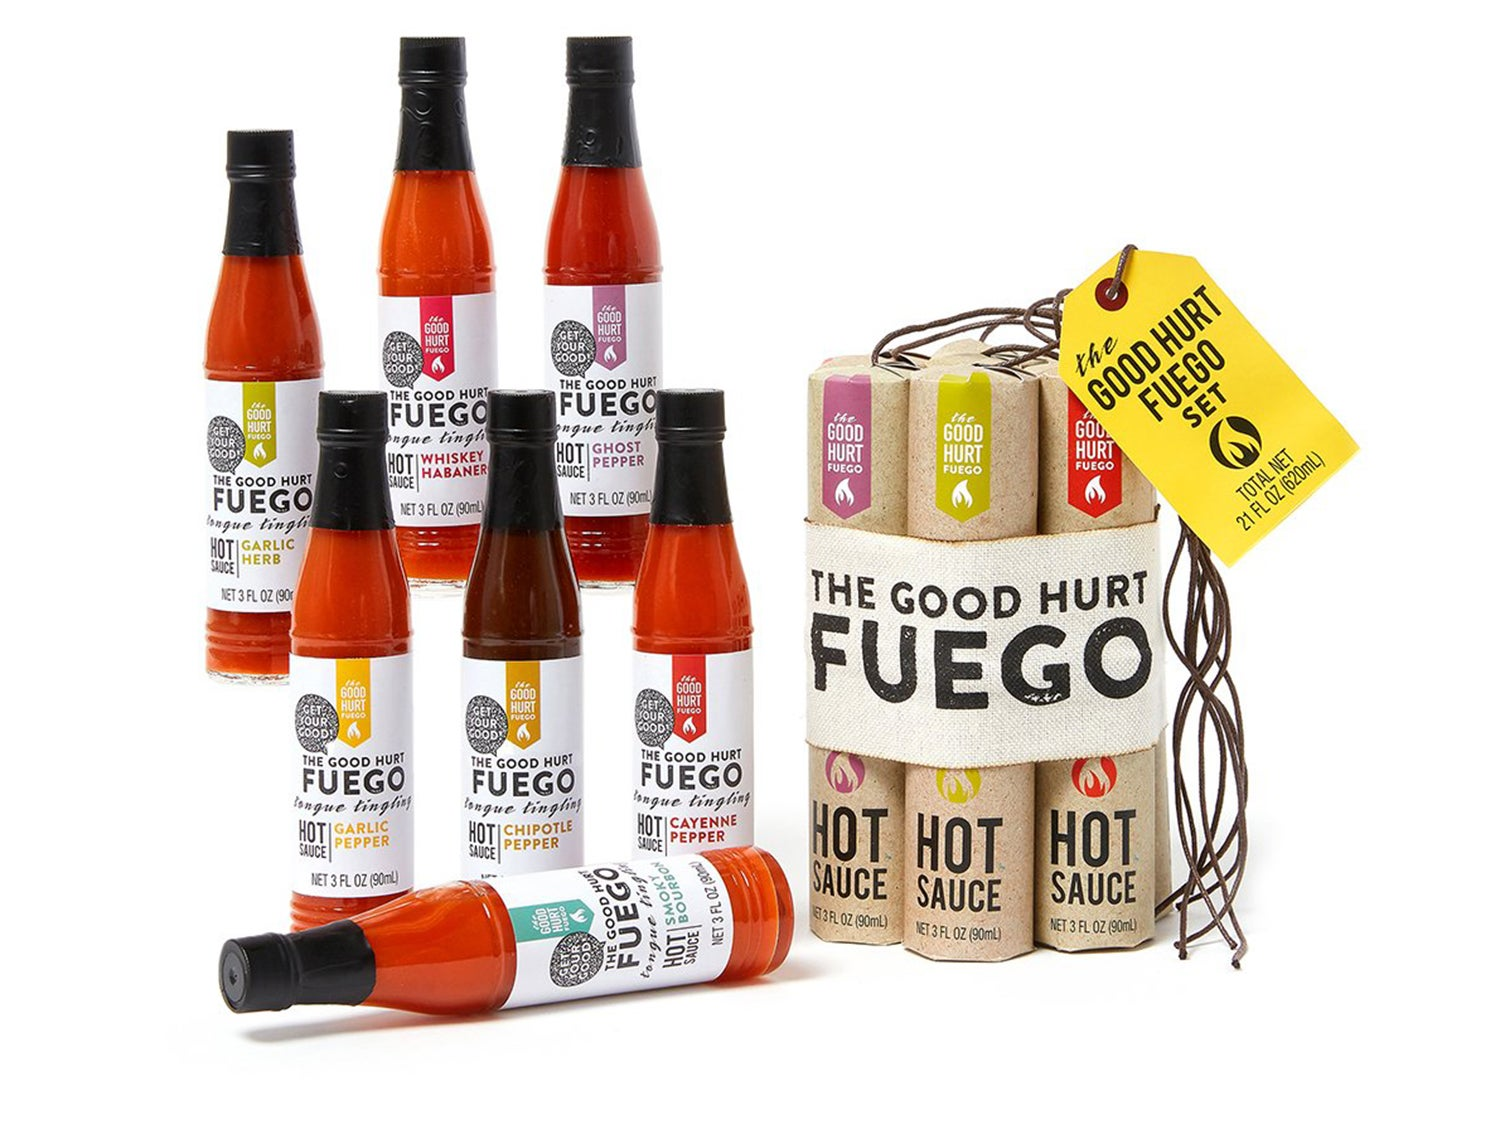 Thoughtfully Gifts, The Good Hurt Fuego: A Hot Sauce Gift Set for Hot Sauce Lovers